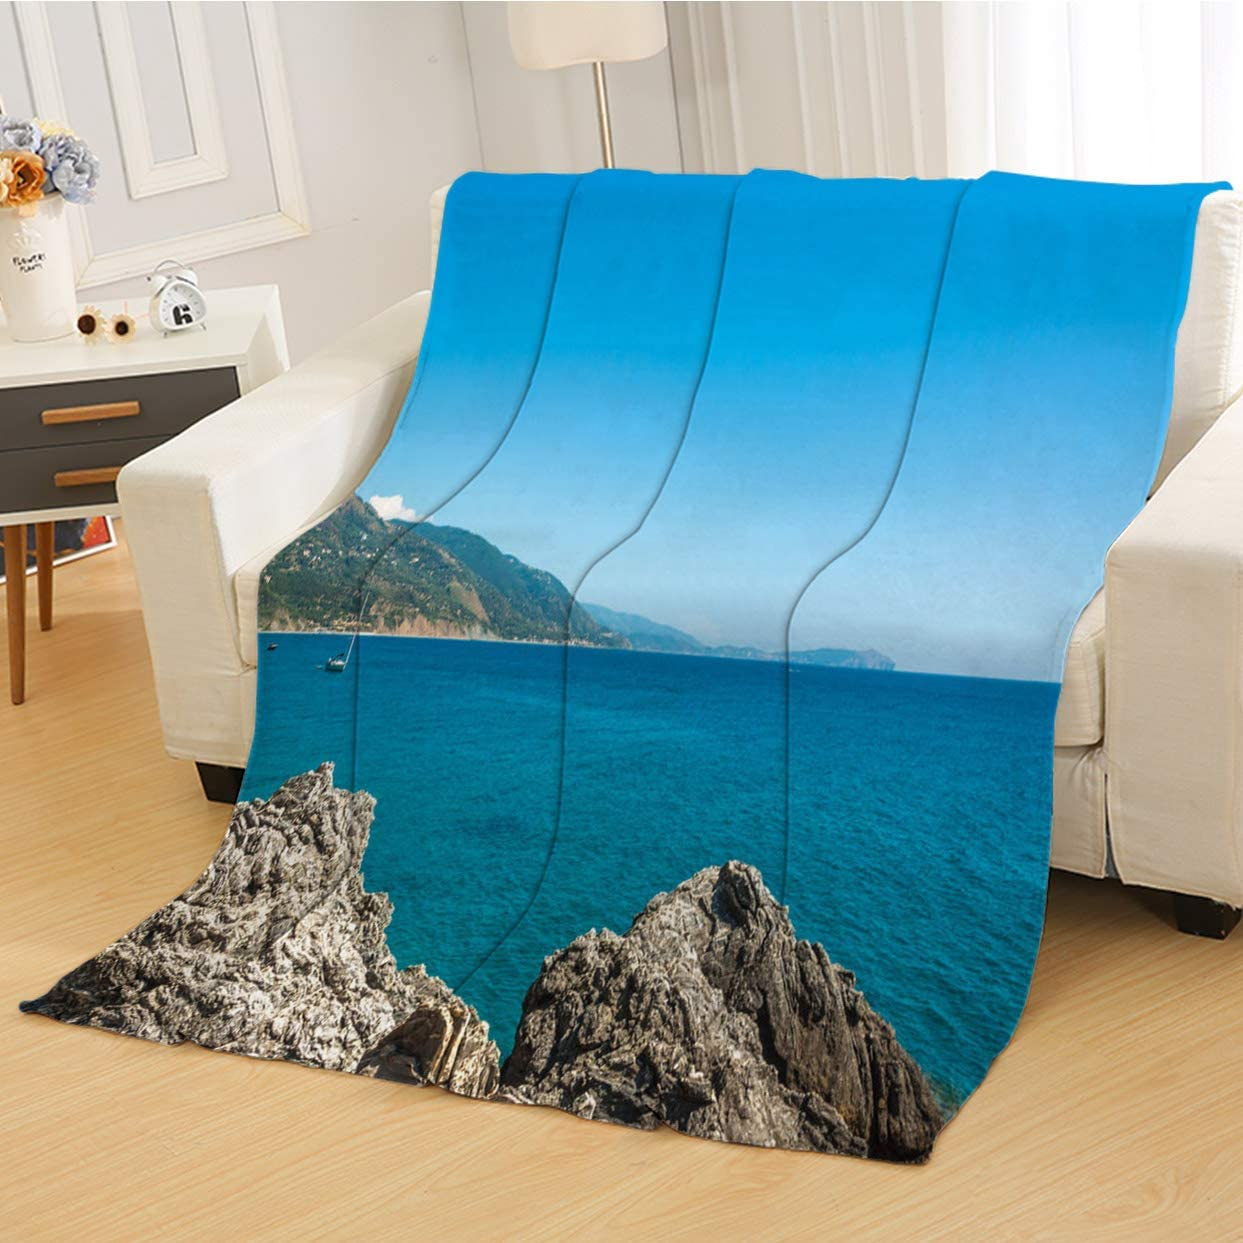 RLDSESS Summer Soft Baby Blanket, All Season Blanket,The Cilento Coastline at Summer Near Pisciotta Campania Italy,Soft Weighted Blanket,Baby Size: 31Wx47L inch